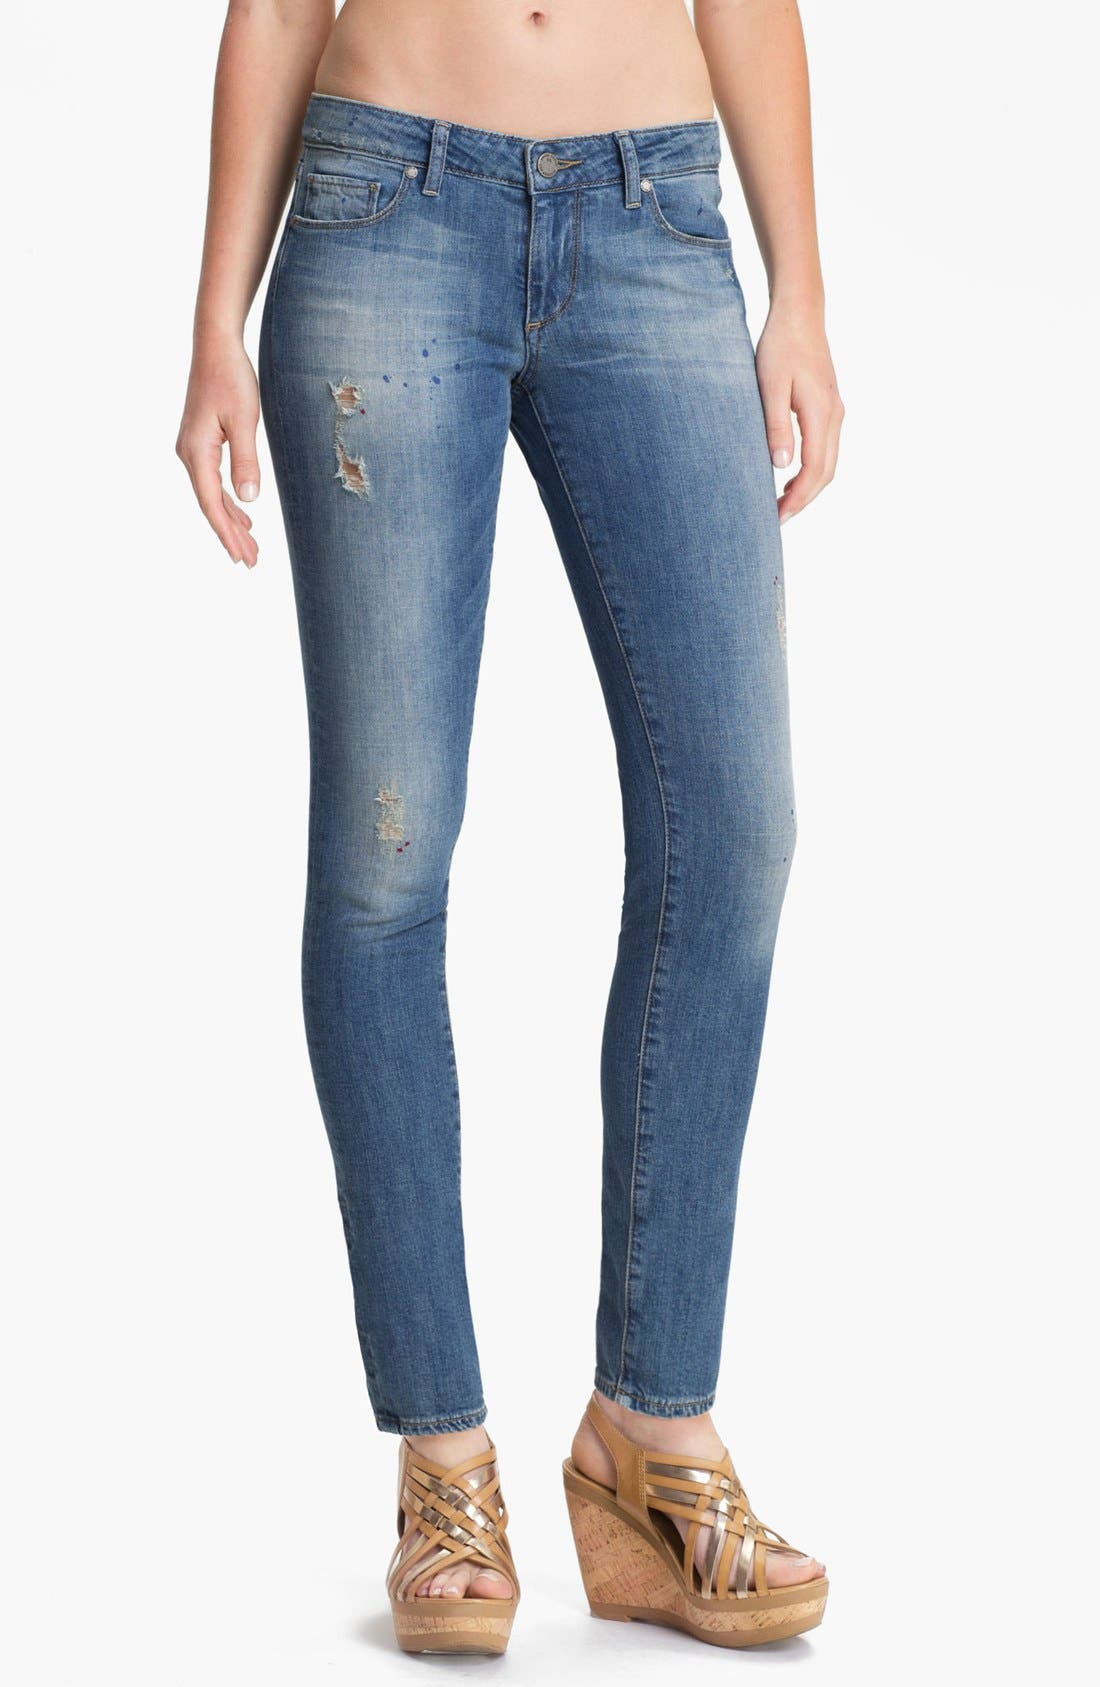 Alternate Image 1 Selected - Paige Denim 'Skyline' Skinny Stretch Ankle Jeans (Monet)